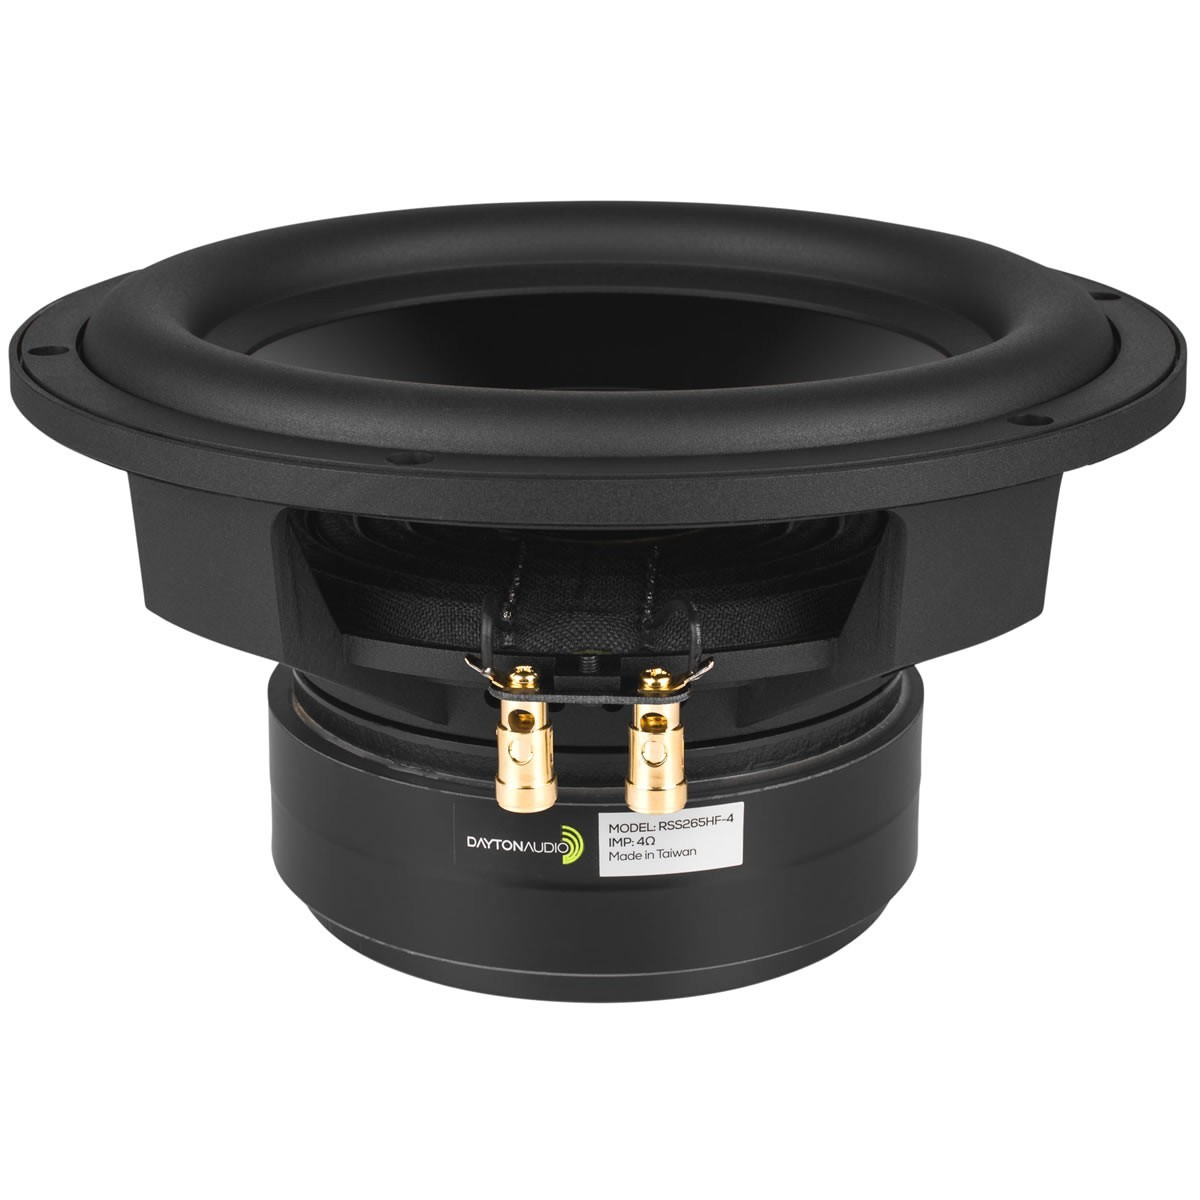 DAYTON AUDIO RSS265HF-4 Reference HP de Grave/Subwoofer 25.5cm